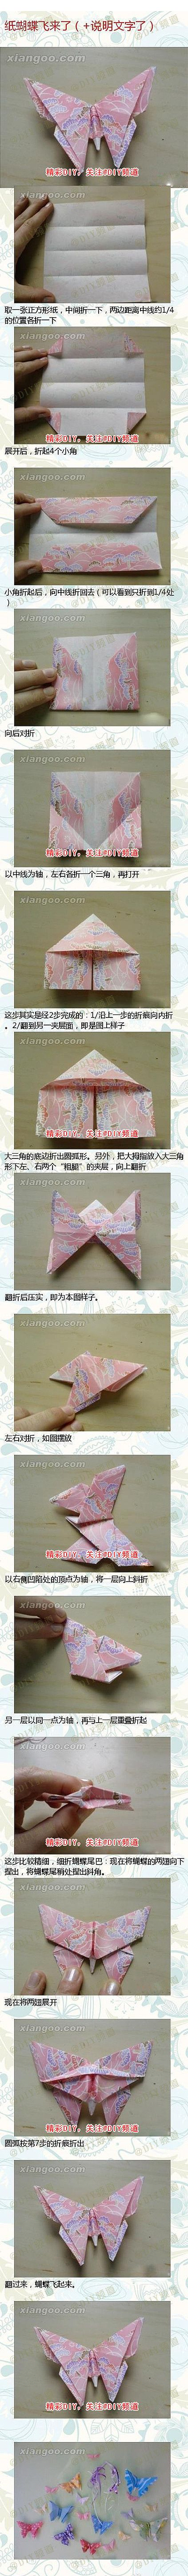 Awesome Idea Have Tons Of Printed Scrap Paper Crafts Origami Butterfly Diagram Butterflies Oragami